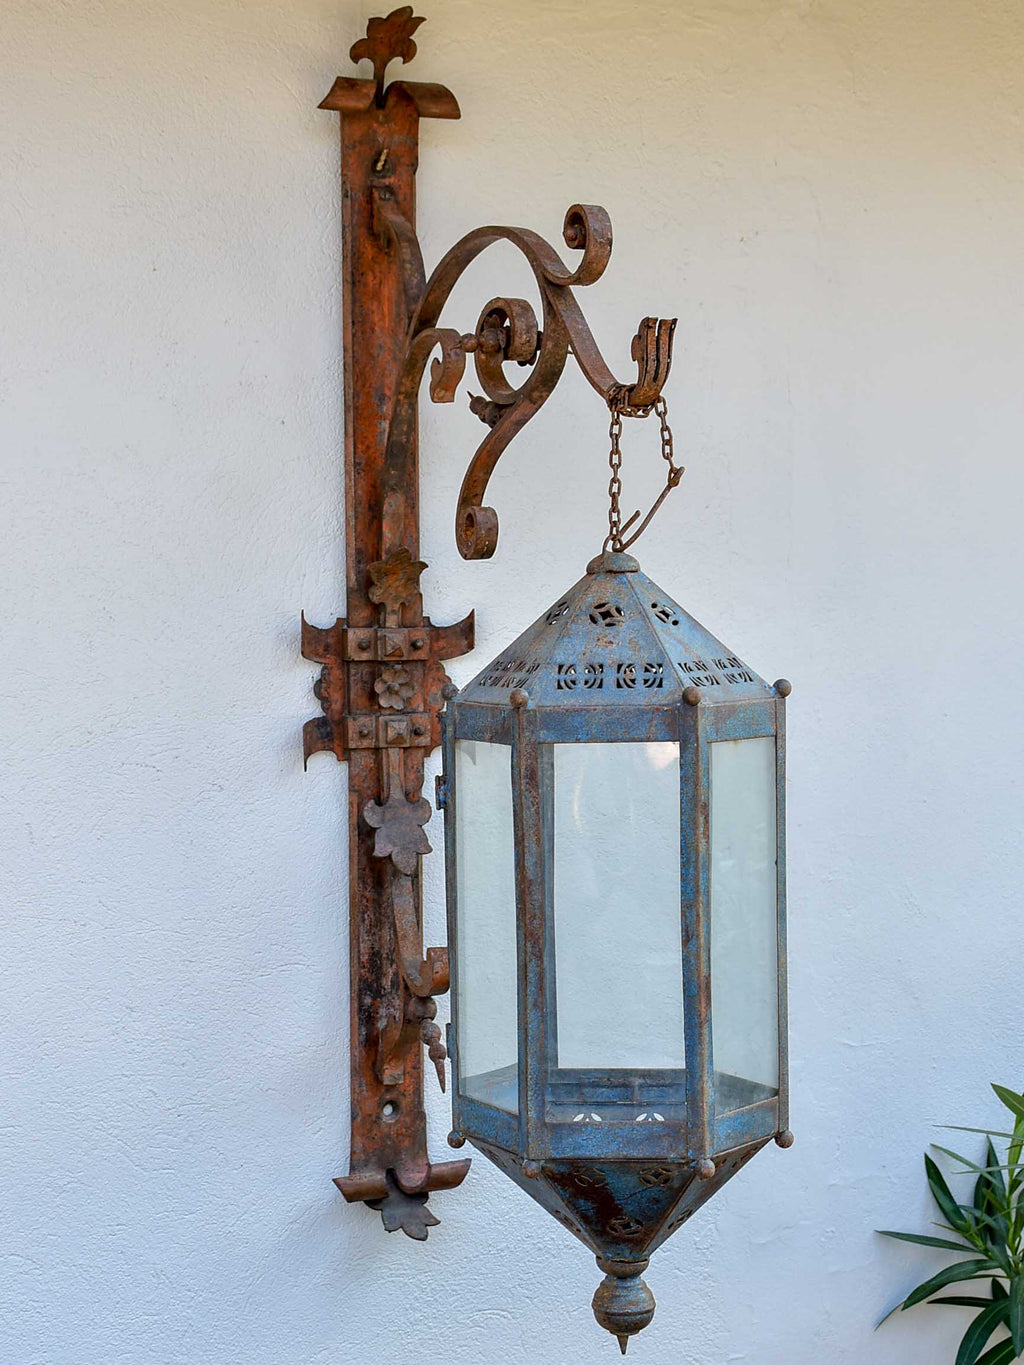 Antique lantern with large wrought iron wall bracket